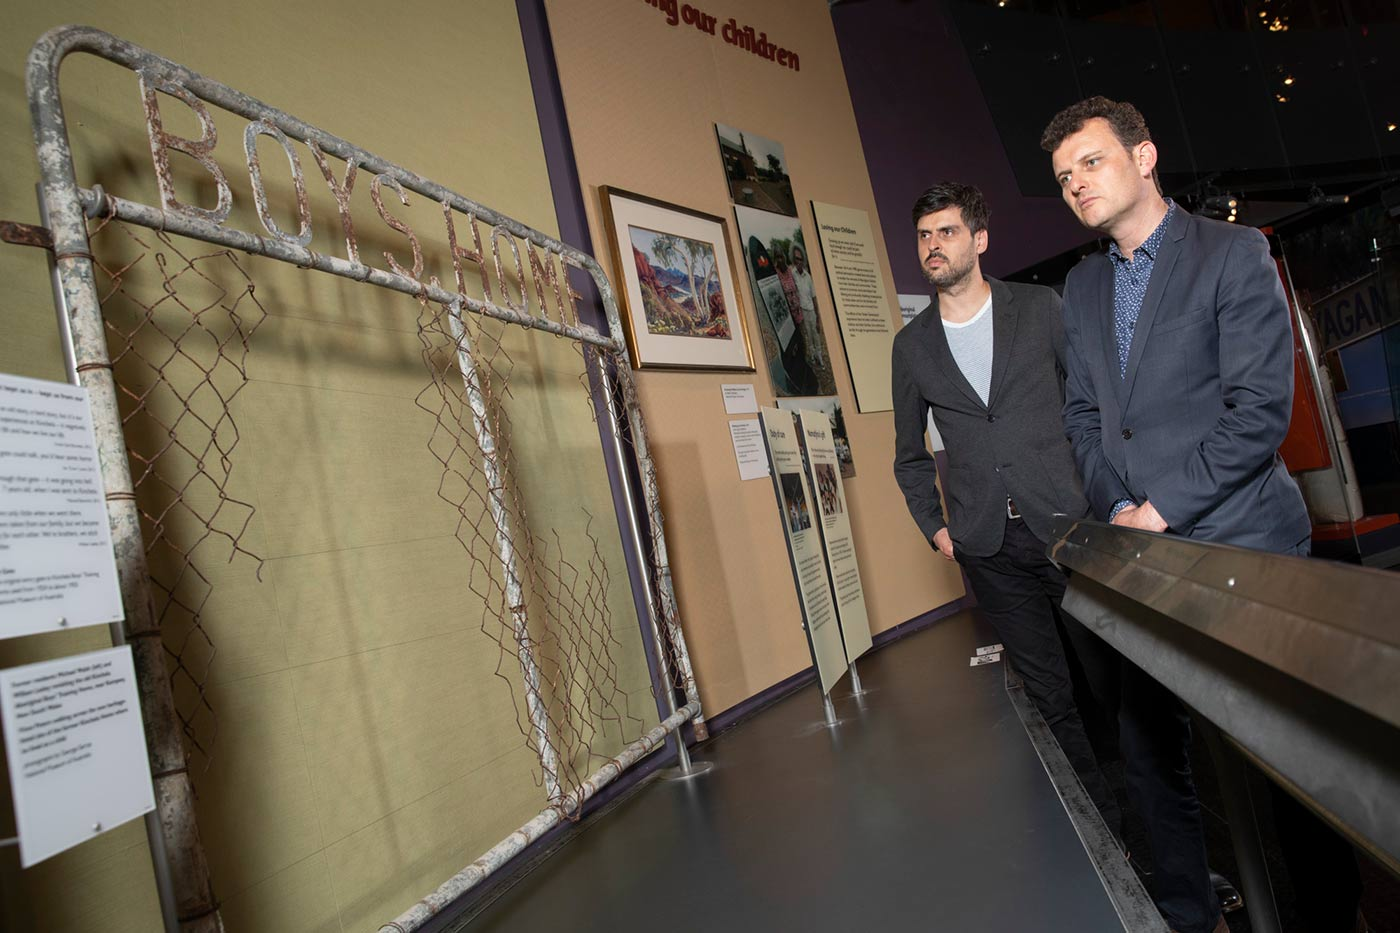 Slava and Leonard Grigoryan inspect a detached old gate on display.